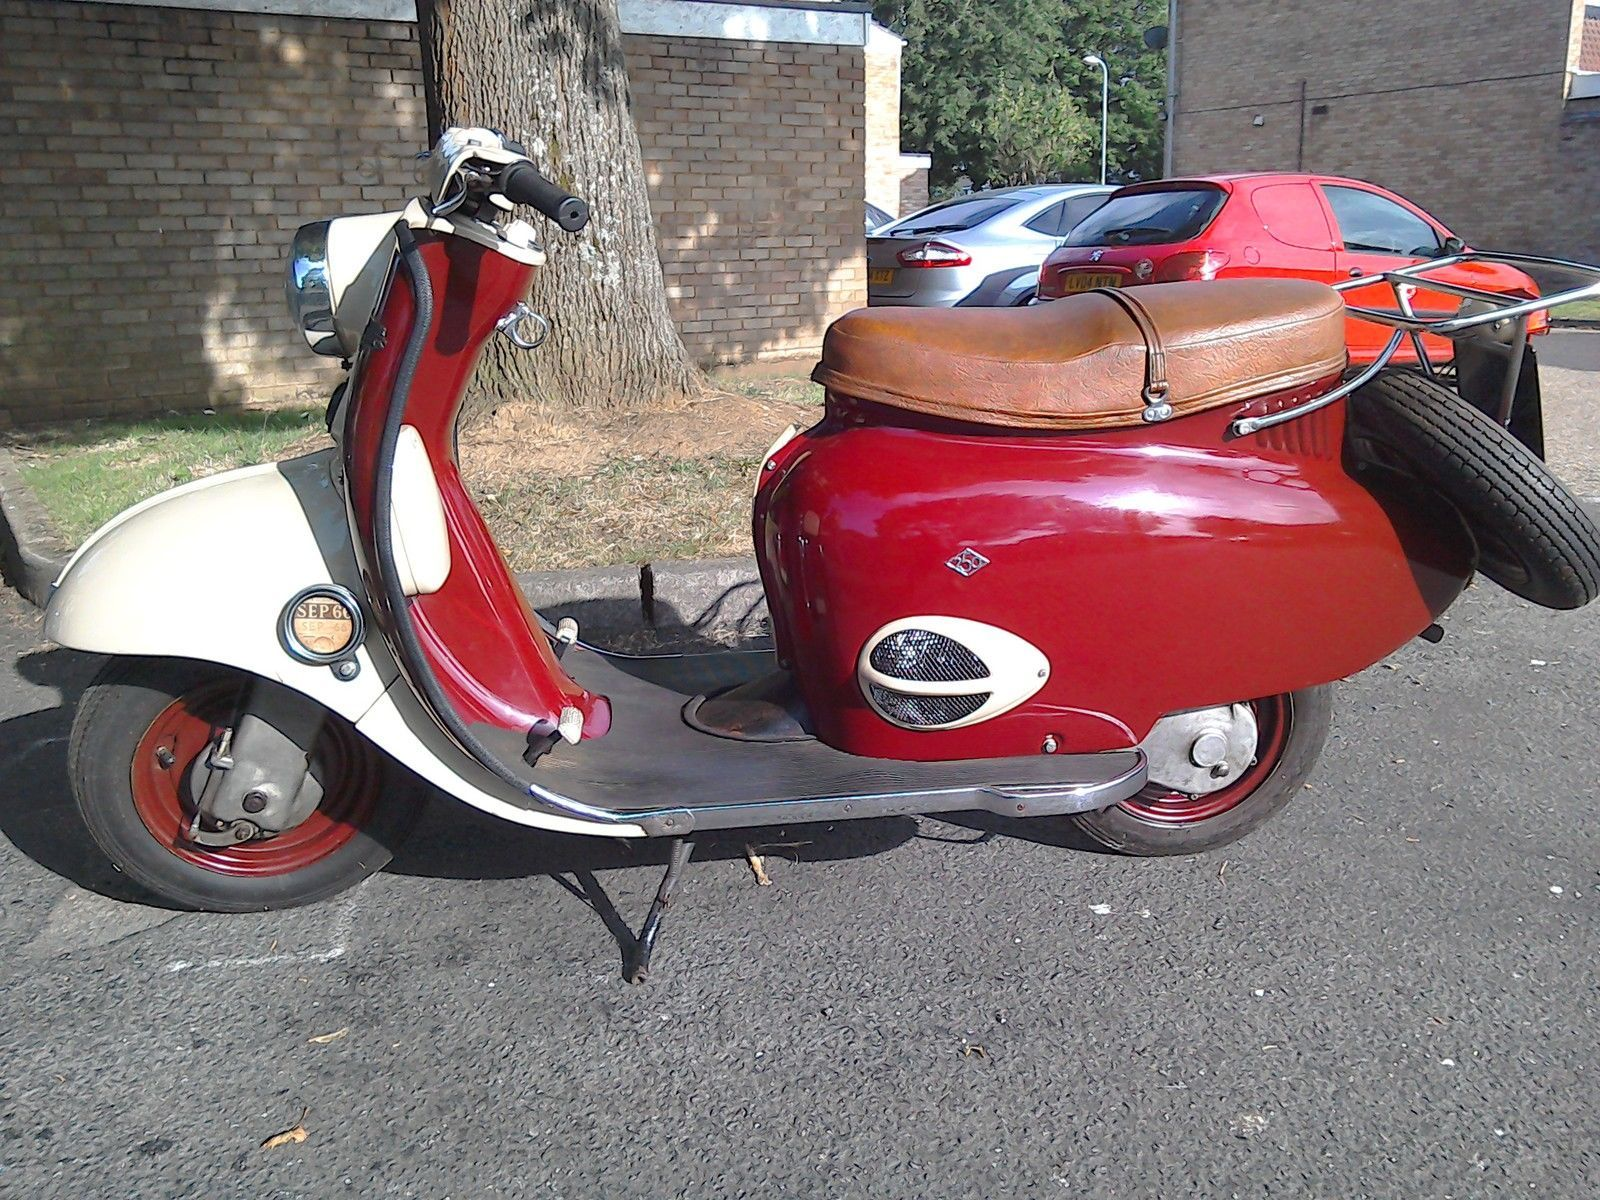 275 best scooters images on pinterest | vespa scooters, vespa and